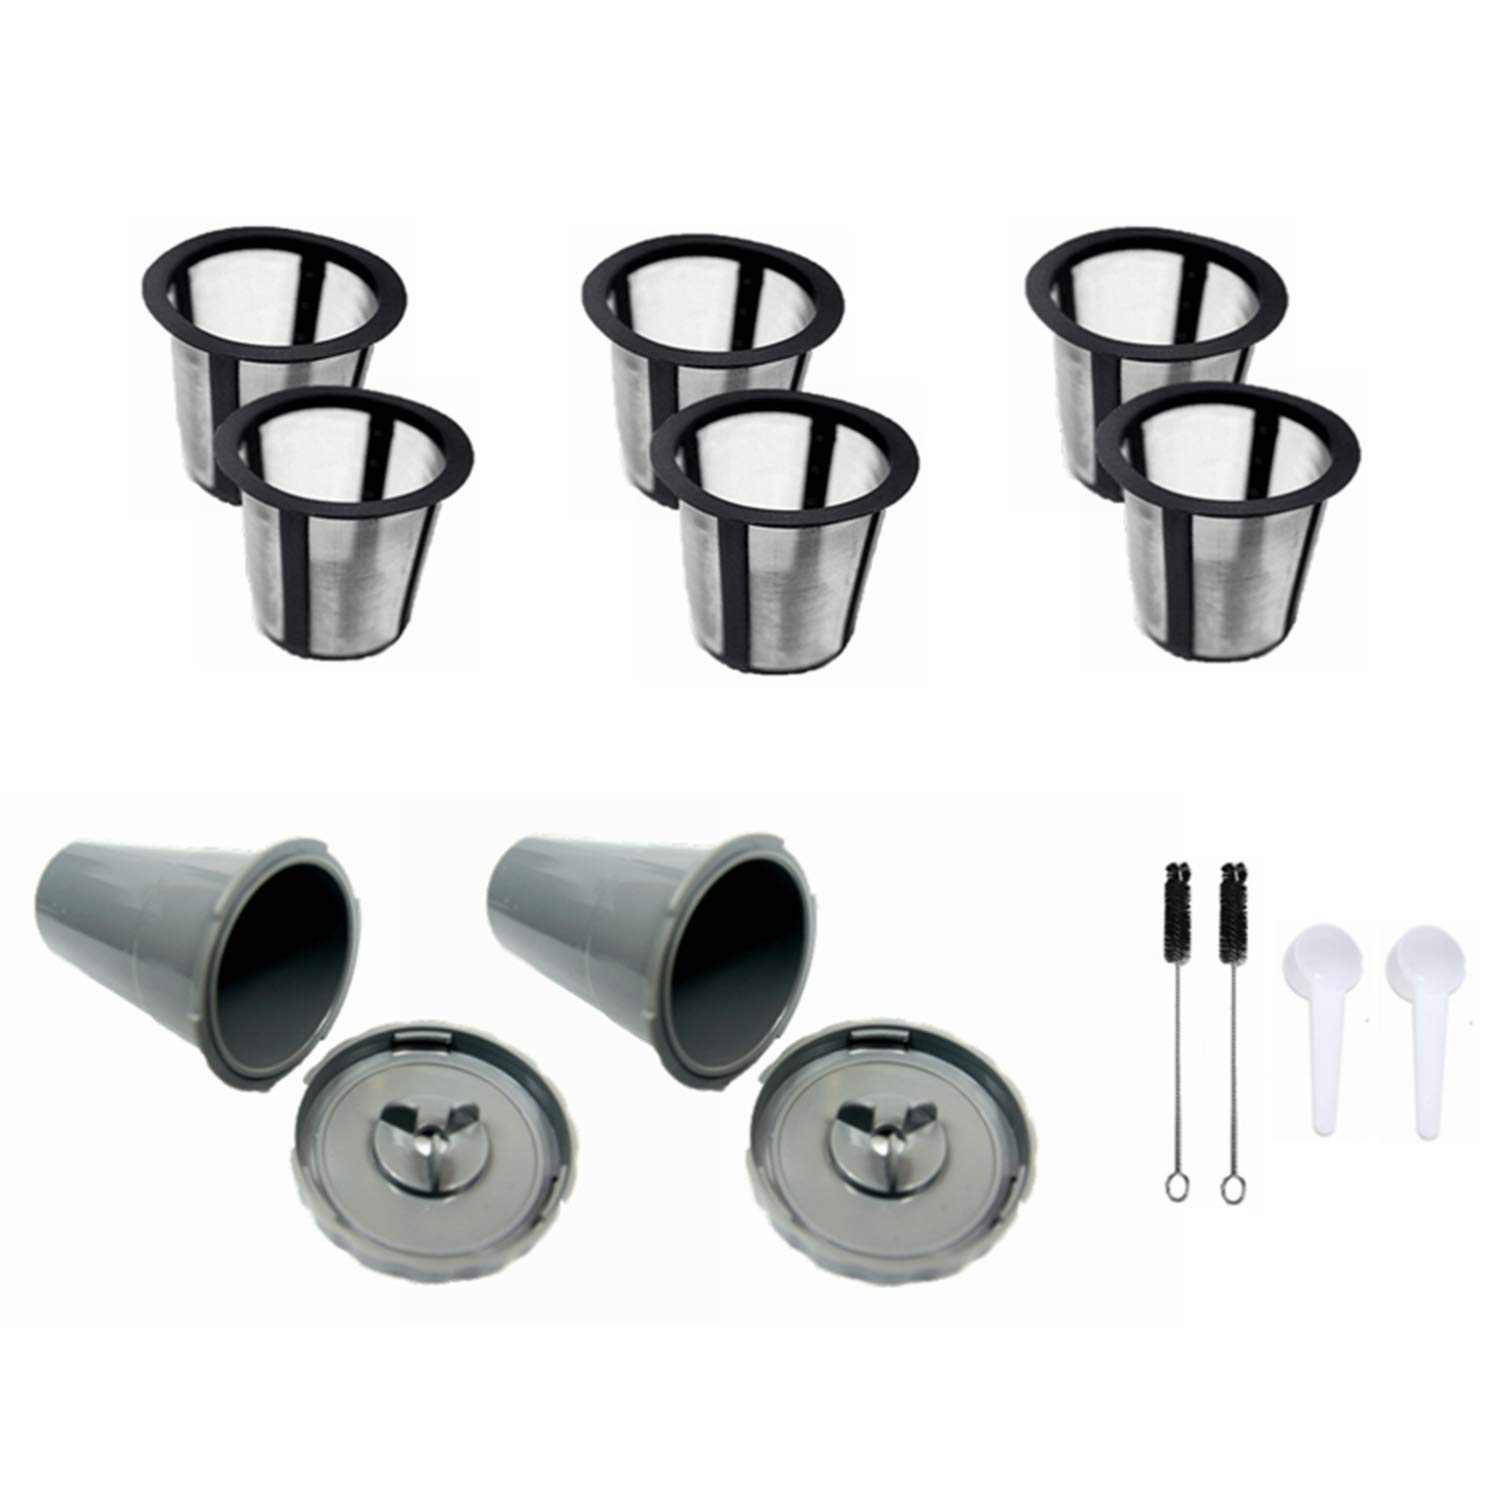 LIGICKY Pack Of 2 Reusable Coffee Filter Set for Keurig Brush for B30 B40 B50 B60 B70 Series Spoon 3 extra filters My K-cup Style Filter Housing